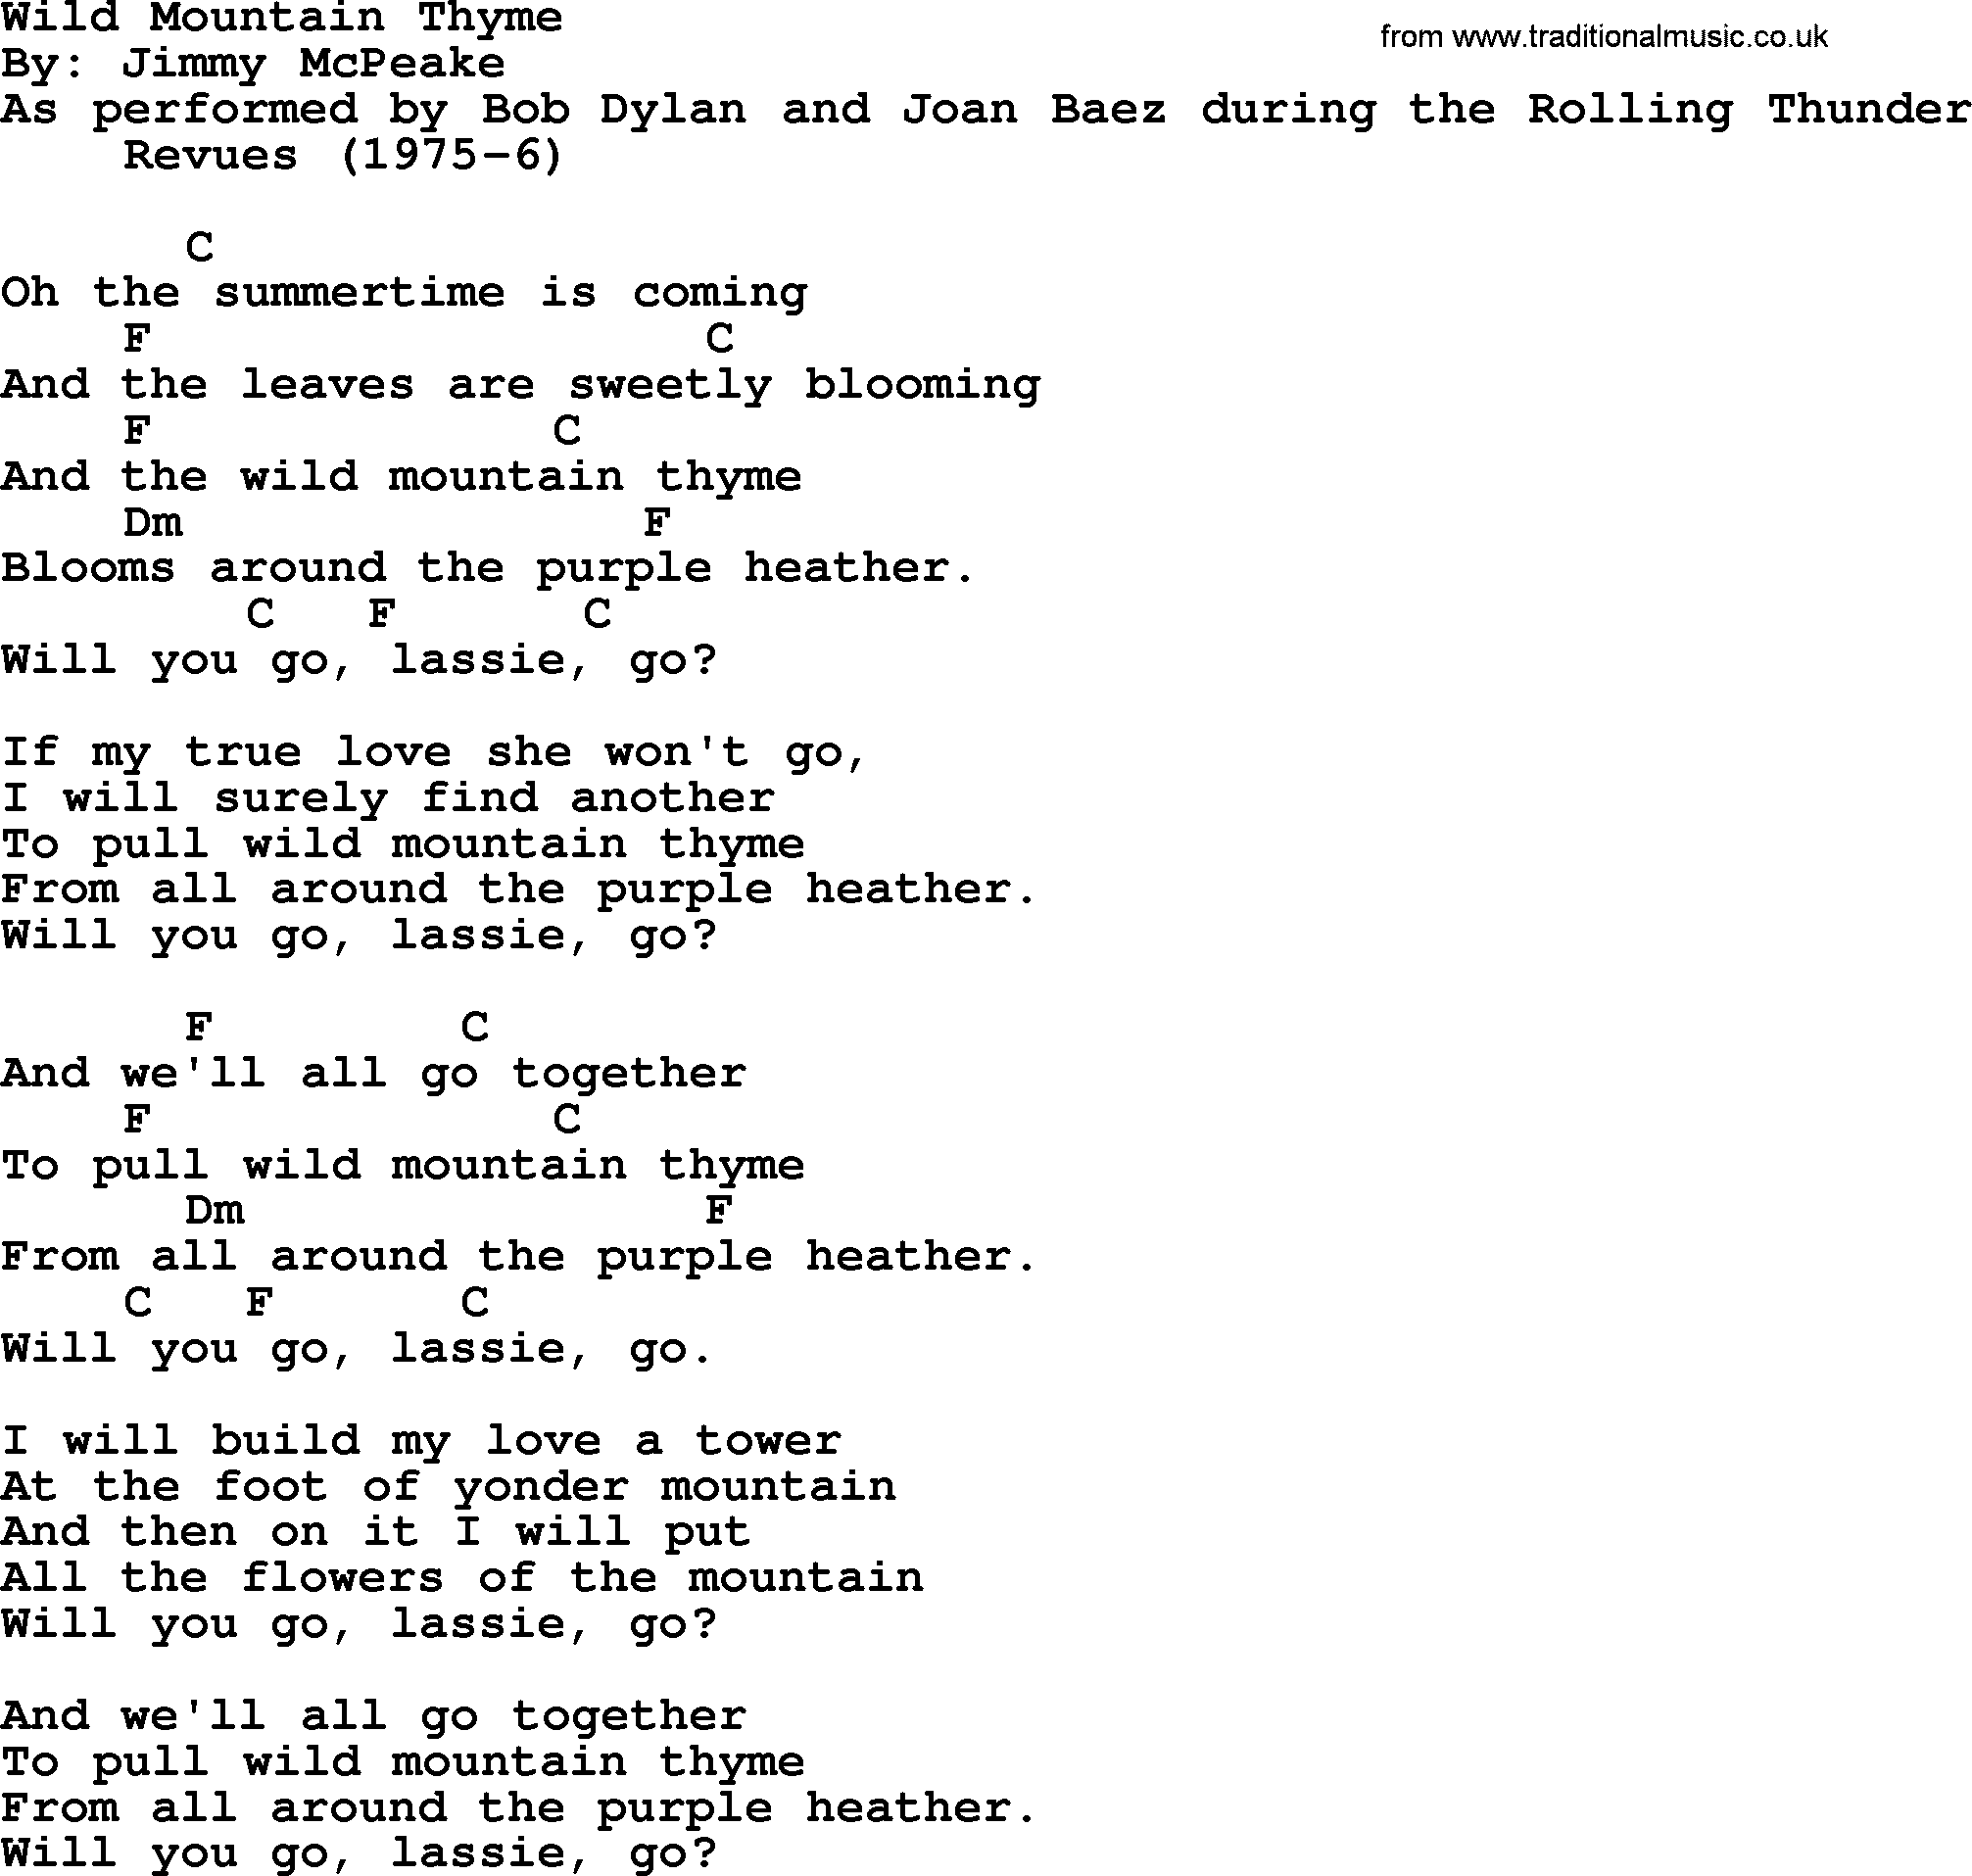 James Taylor - Wild Mountain Thyme Lyrics | MetroLyrics